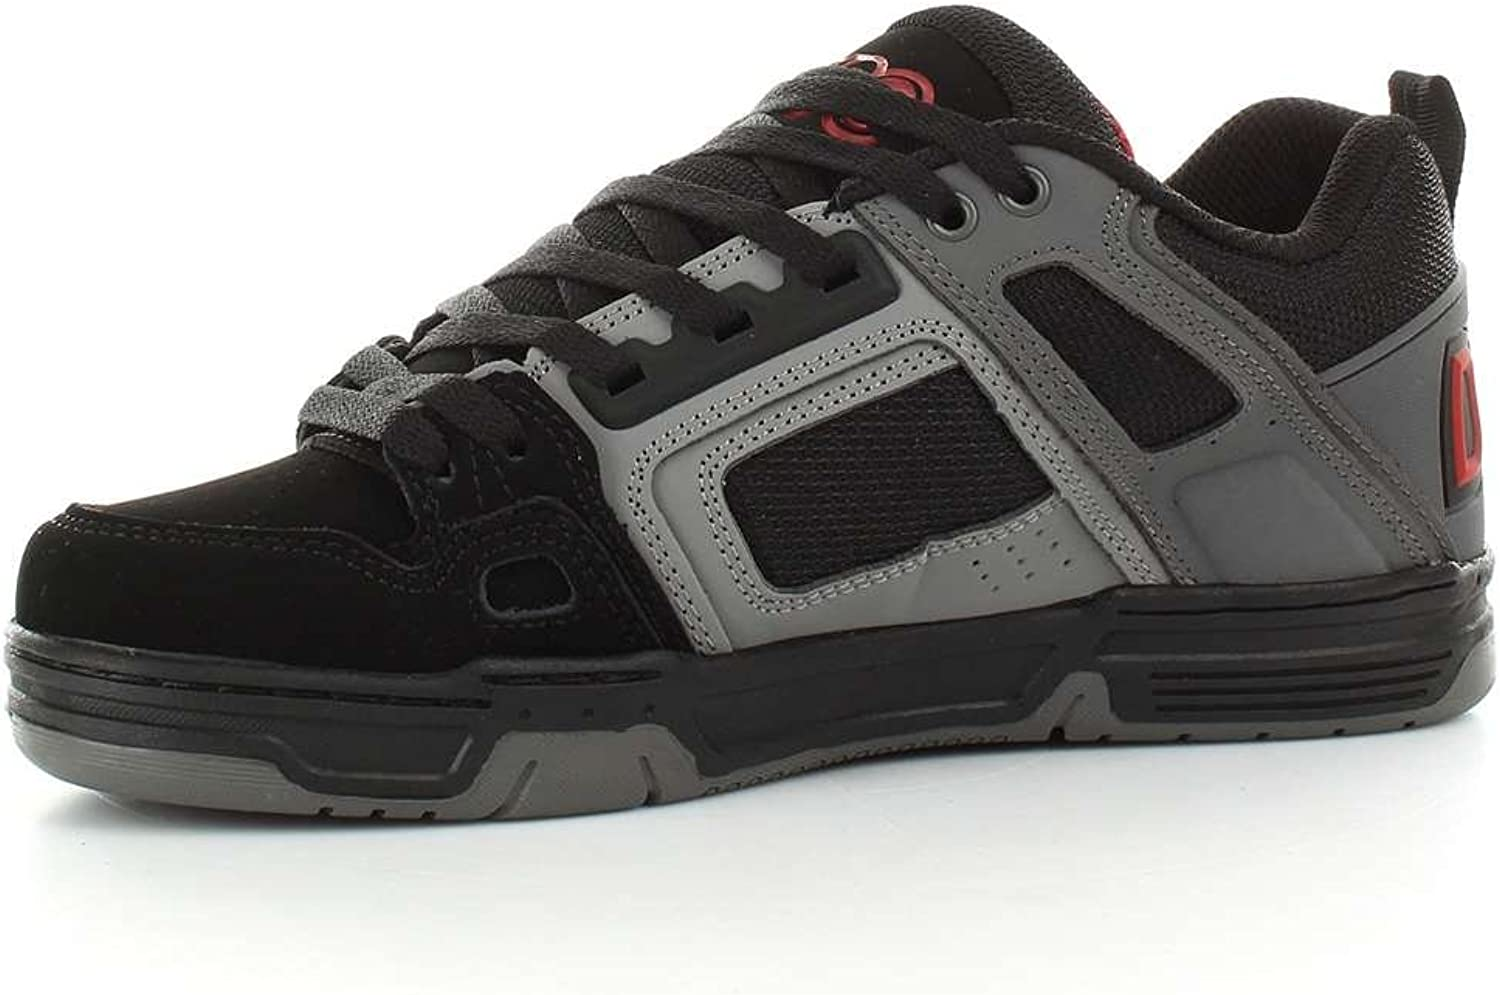 DVS Men's Comanche Skate Shoe Black White